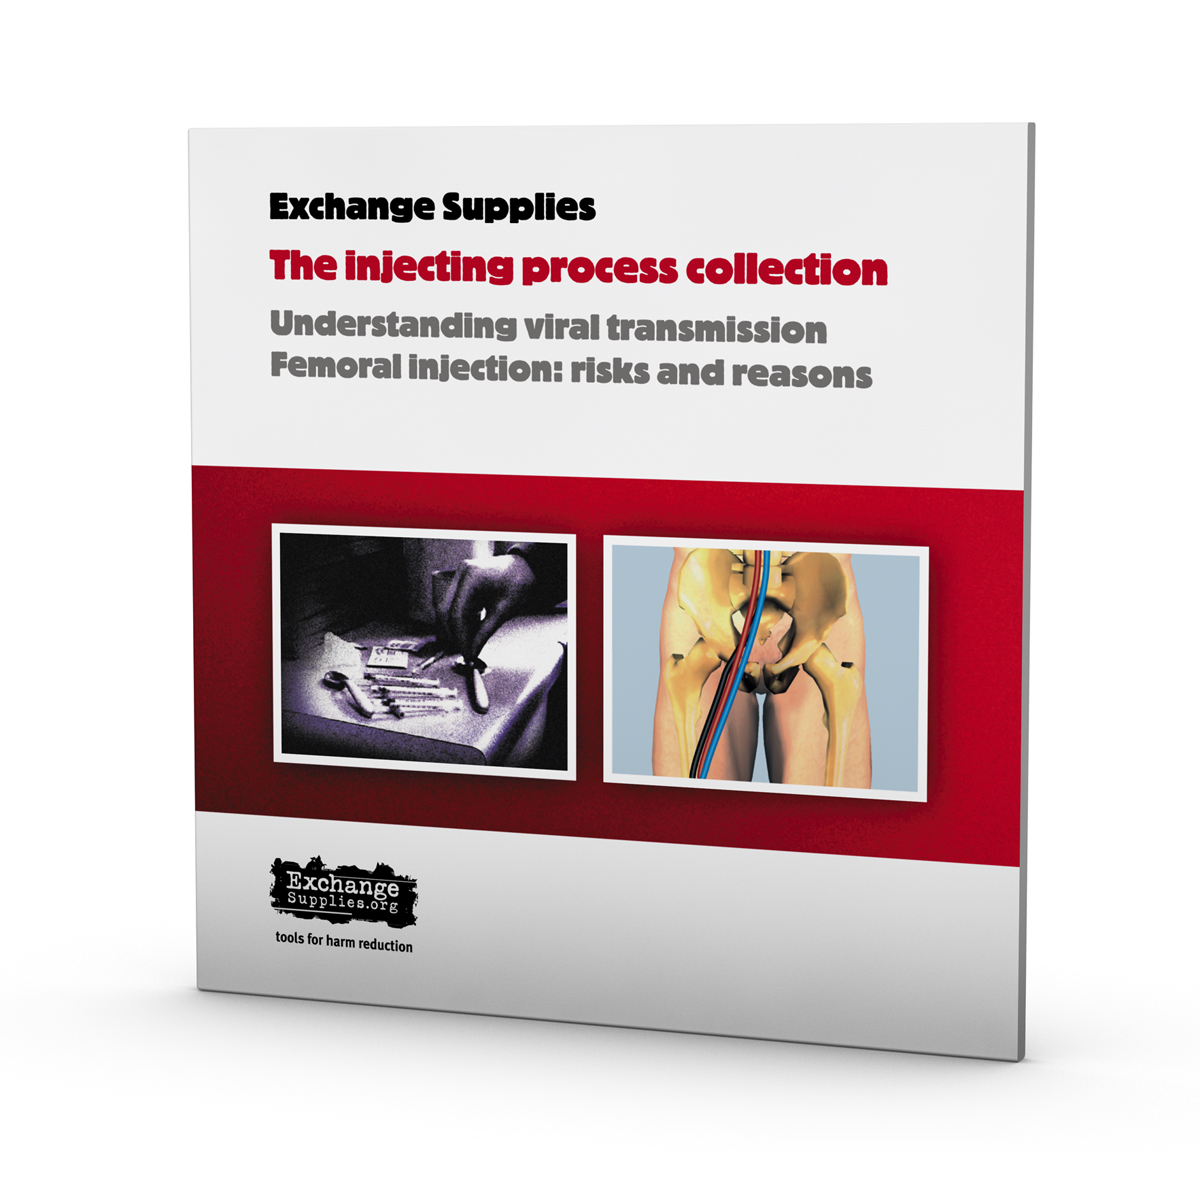 the collection process Collection definition is - the act or process of collecting how to use collection in a sentence the act or process of collecting see the full definition.